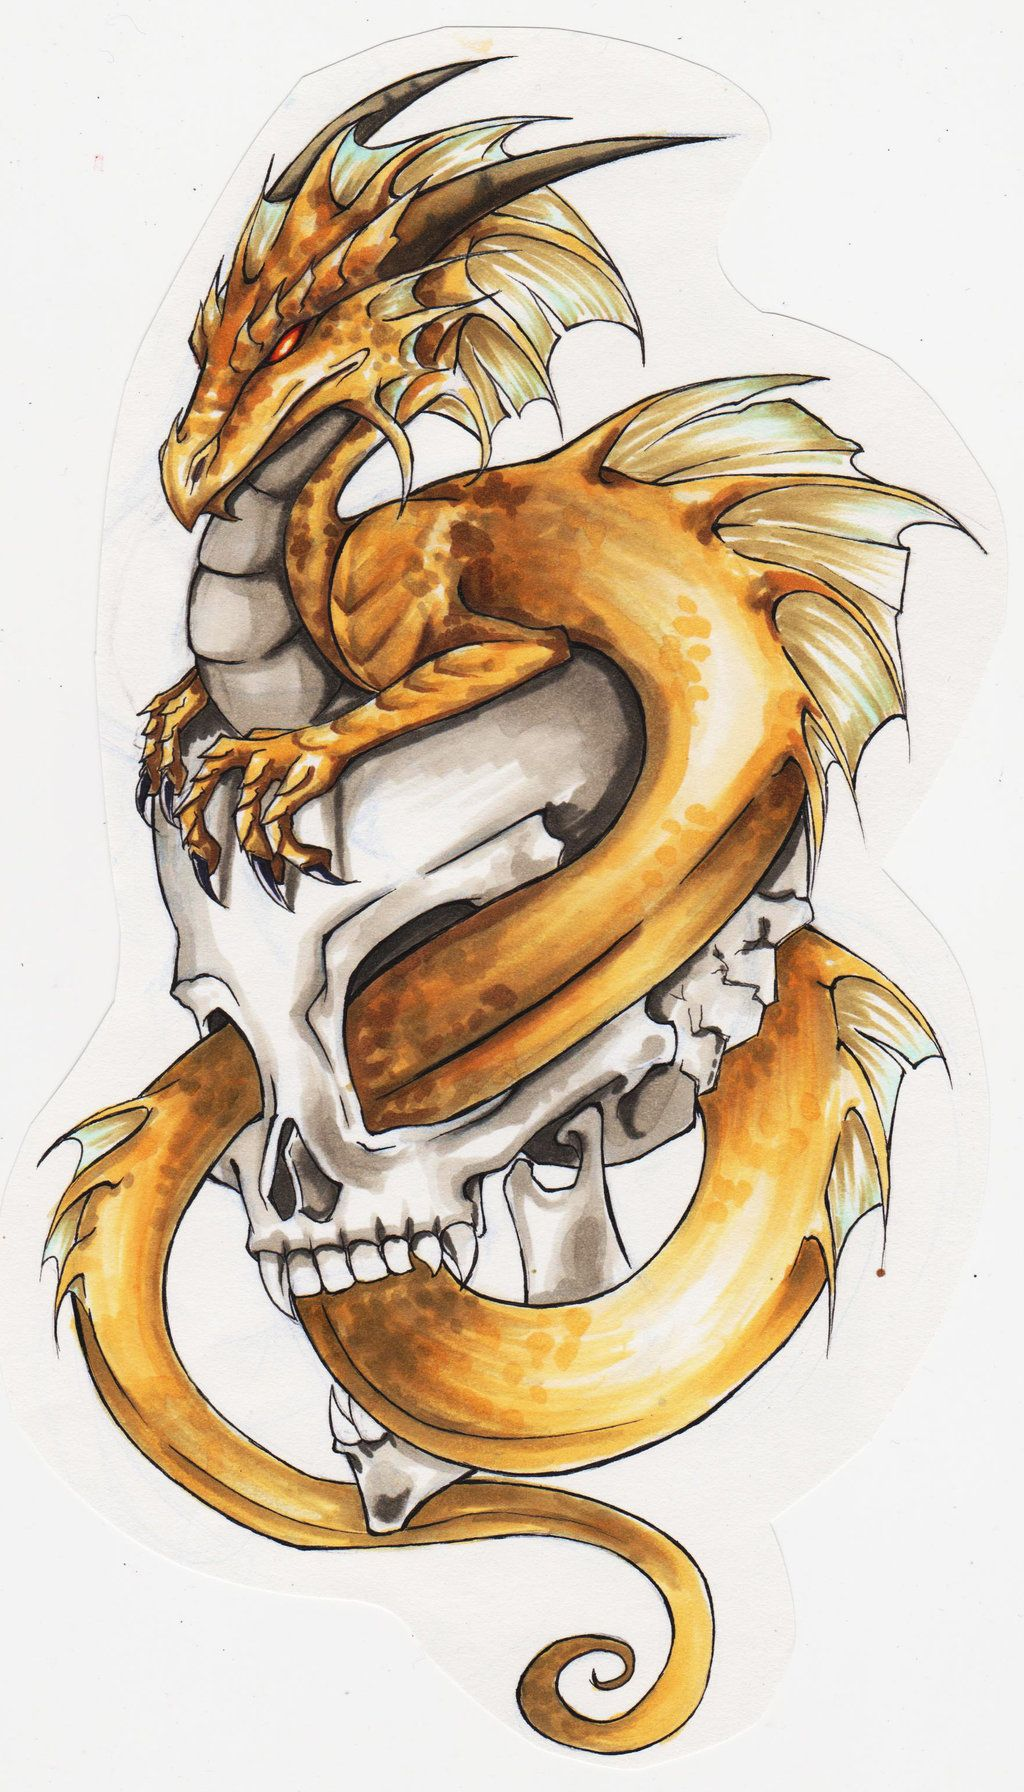 Dragon Skull Dragon Tattoo Designs Dragon Sleeve Tattoos Skull Tattoo Design